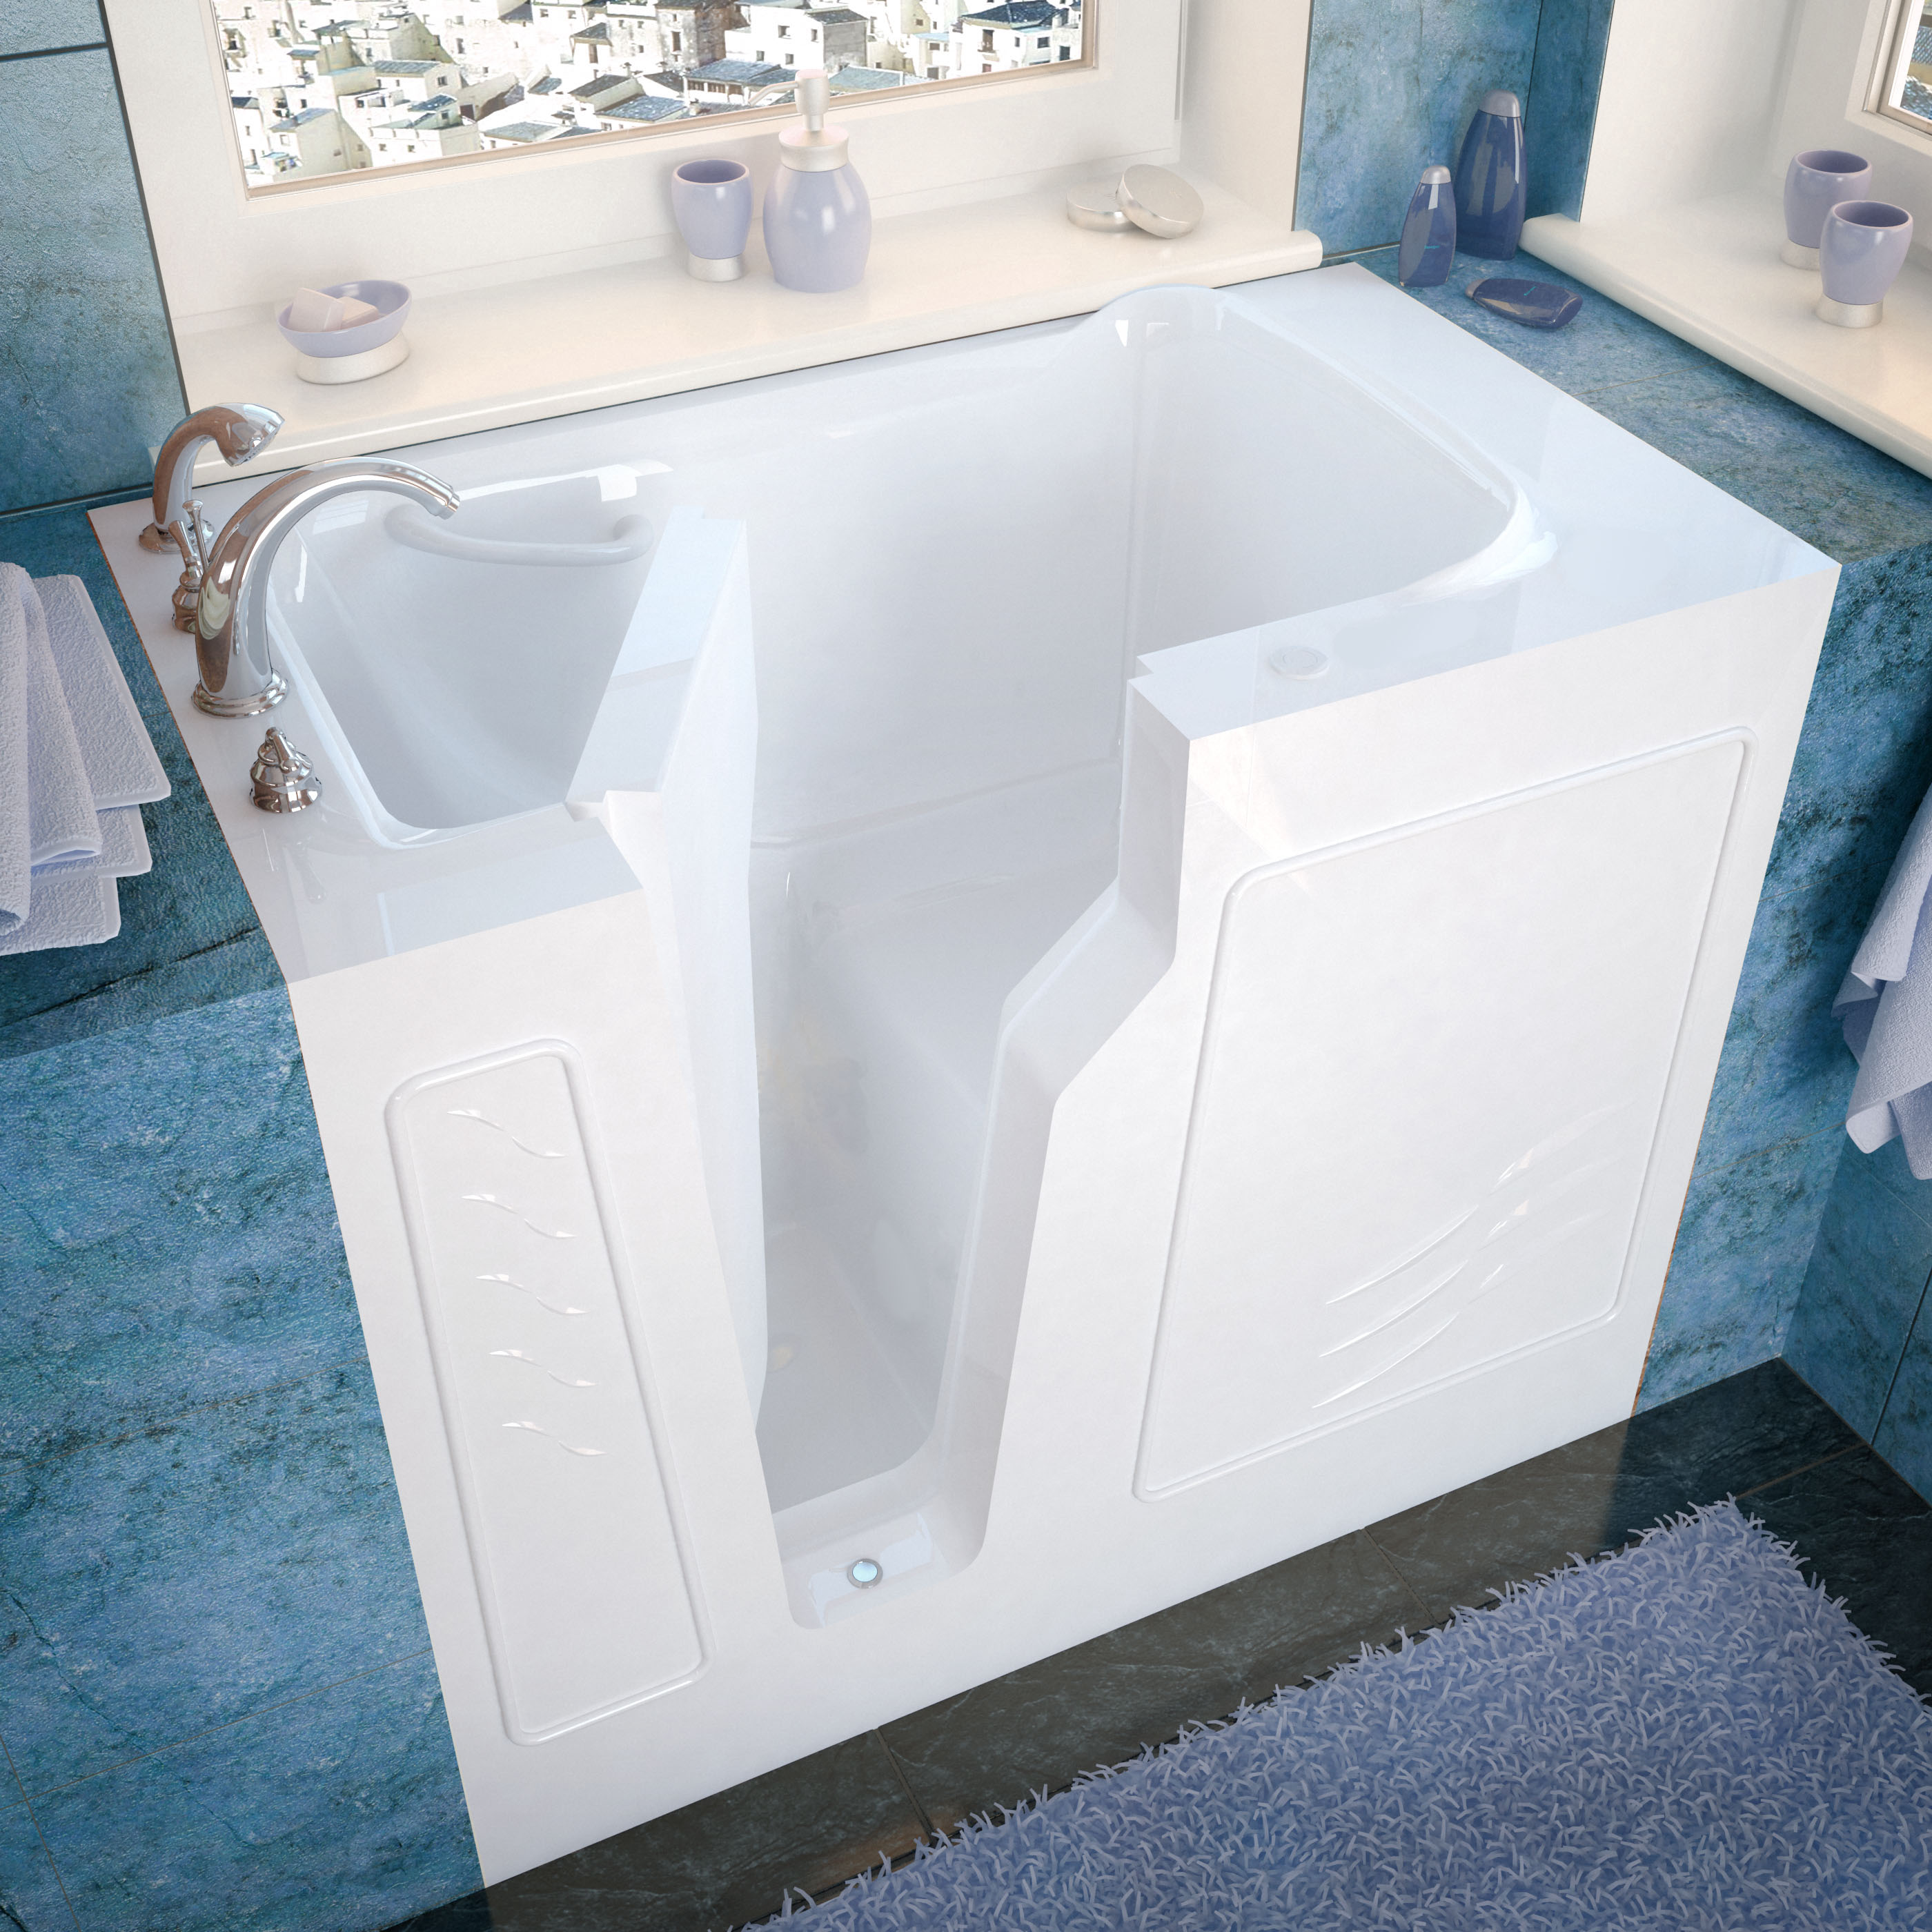 26x46 Left Drain White Soaking Walk-In Bathtub